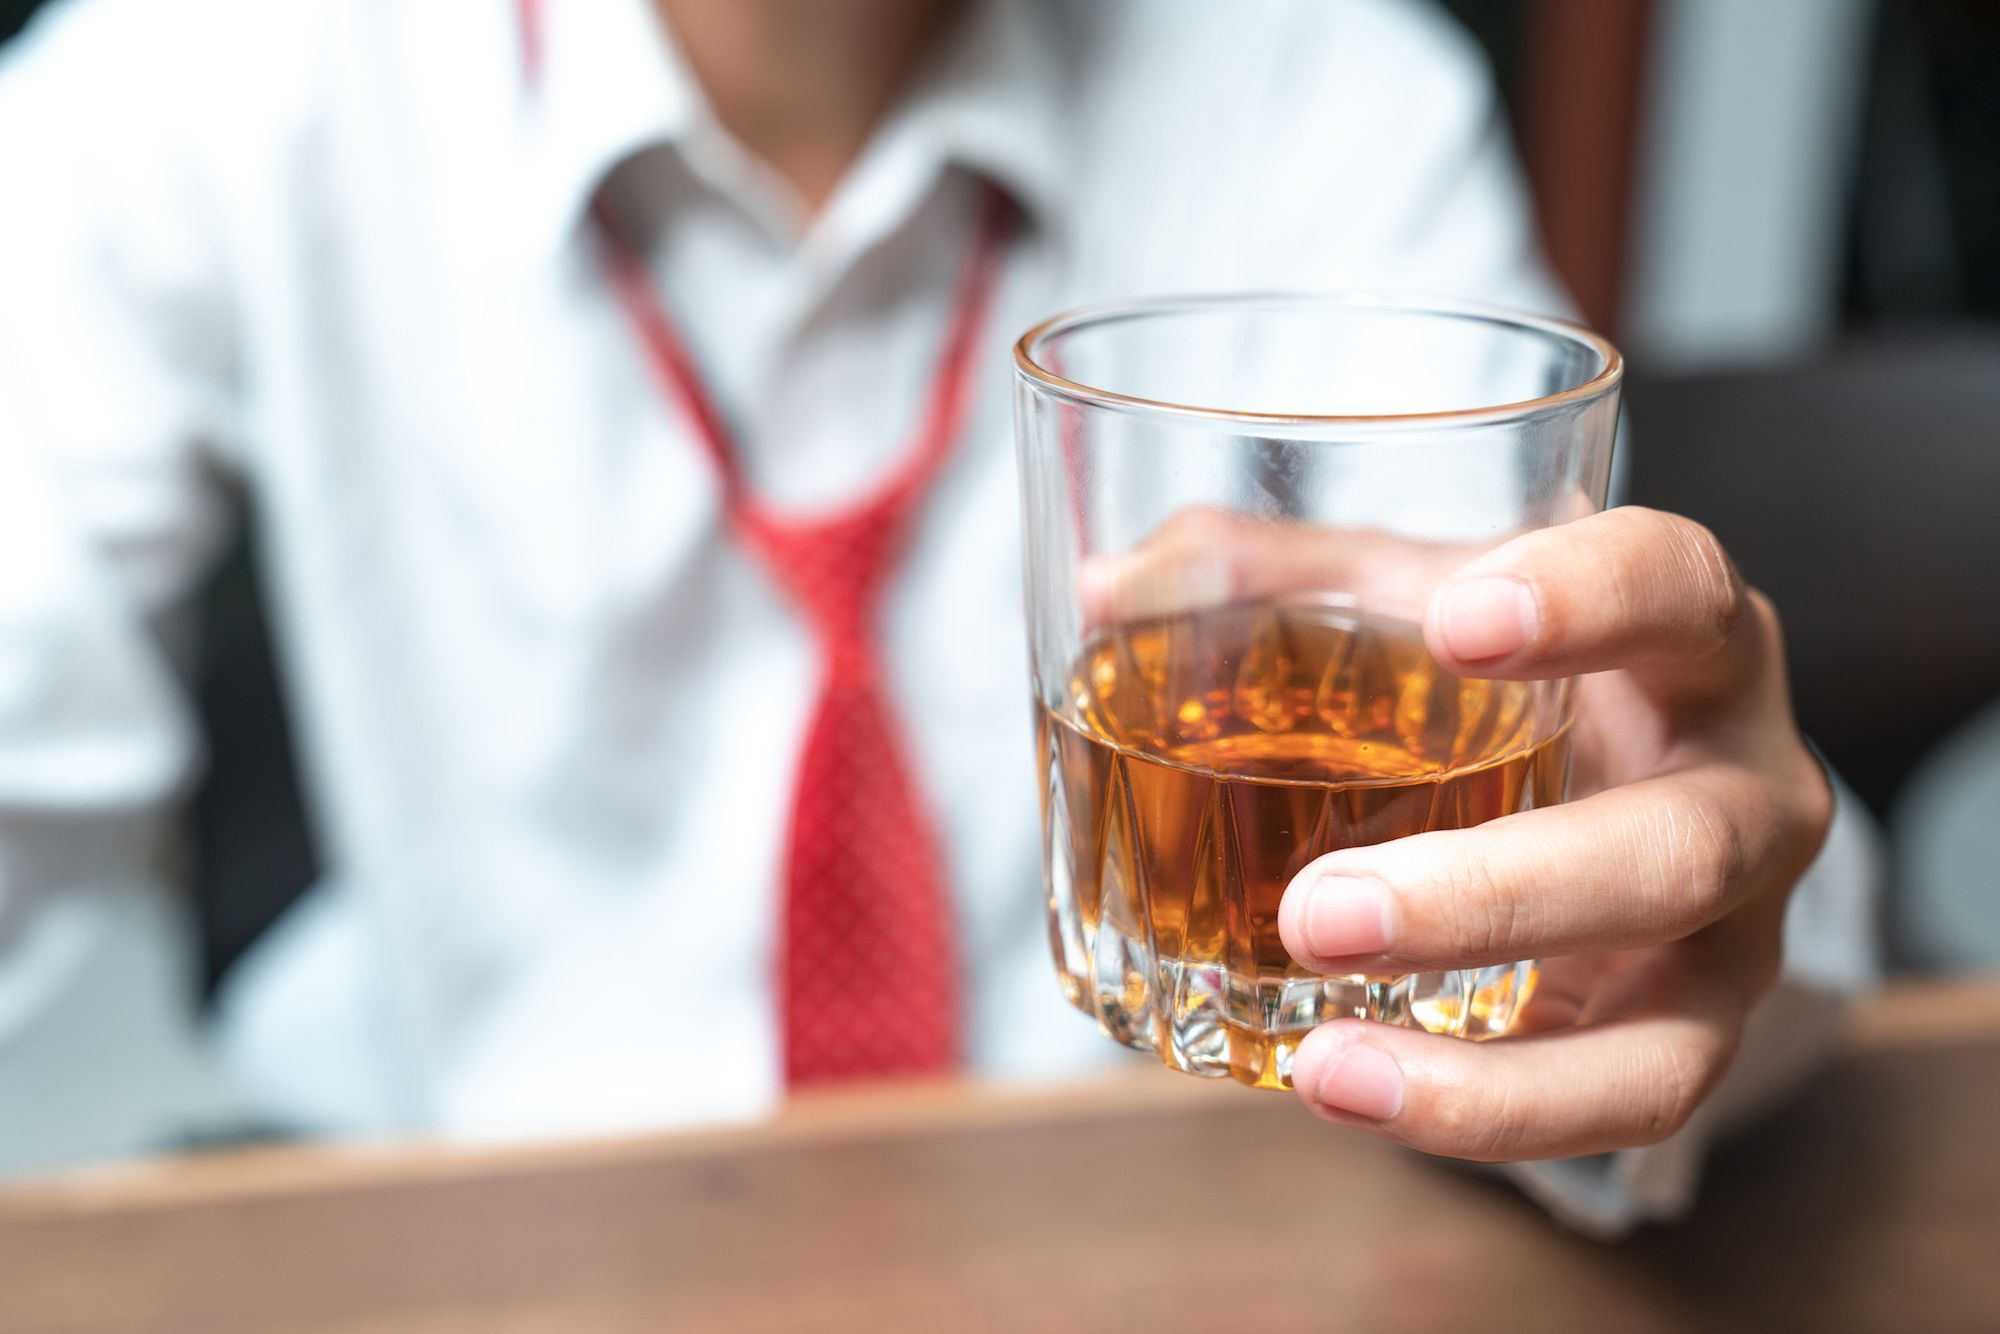 Things to consider before buying alcohol online